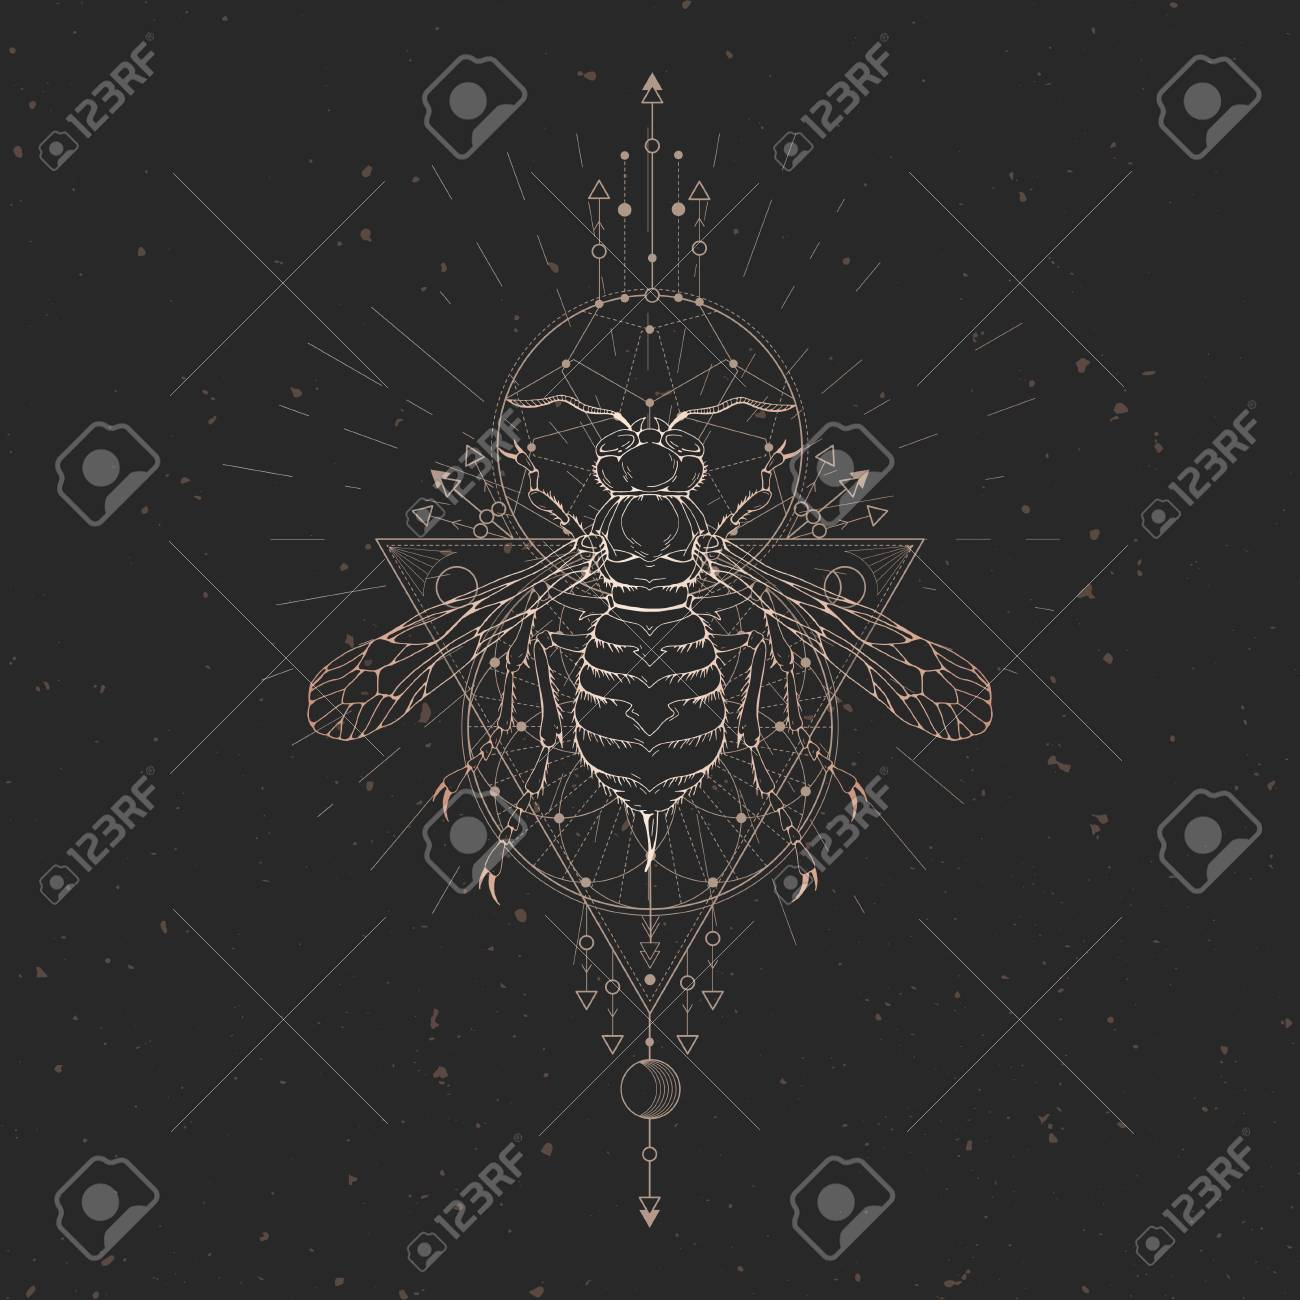 13fee3a63 Vector illustration with hand drawn wasp and Sacred geometric symbol on  black vintage background. Abstract